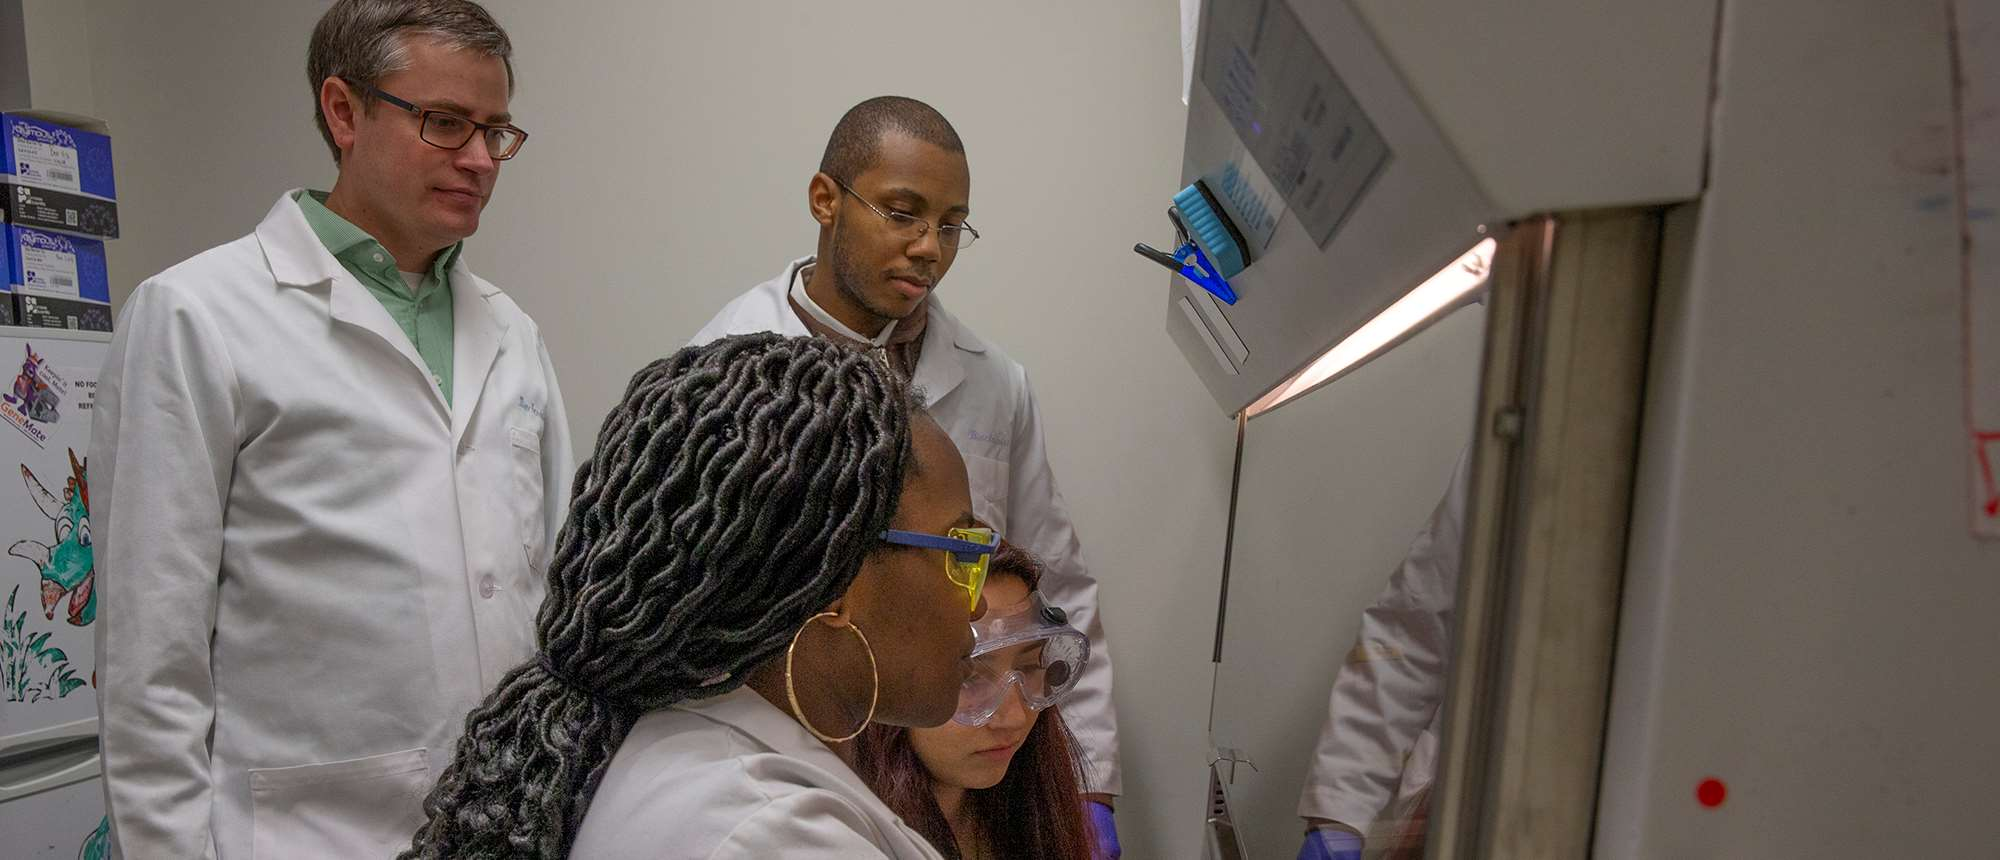 Intentional about diversity: MCW Biochemistry lab makes strides in inclusion and representation